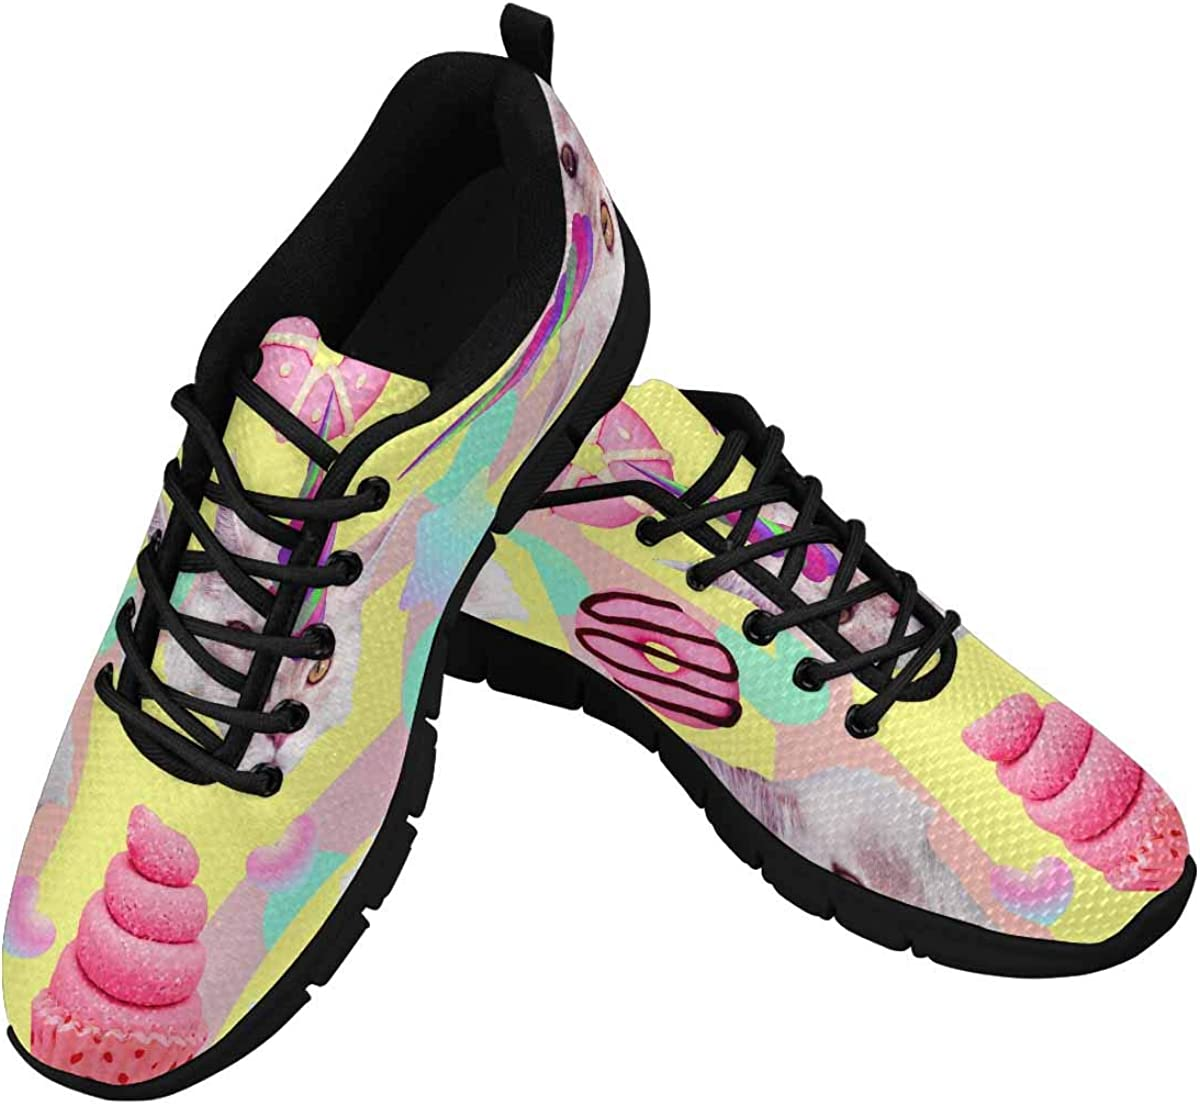 InterestPrint Cute Cat Donut Women's Running Shoes Mesh Breathable Sports Casual Shoes